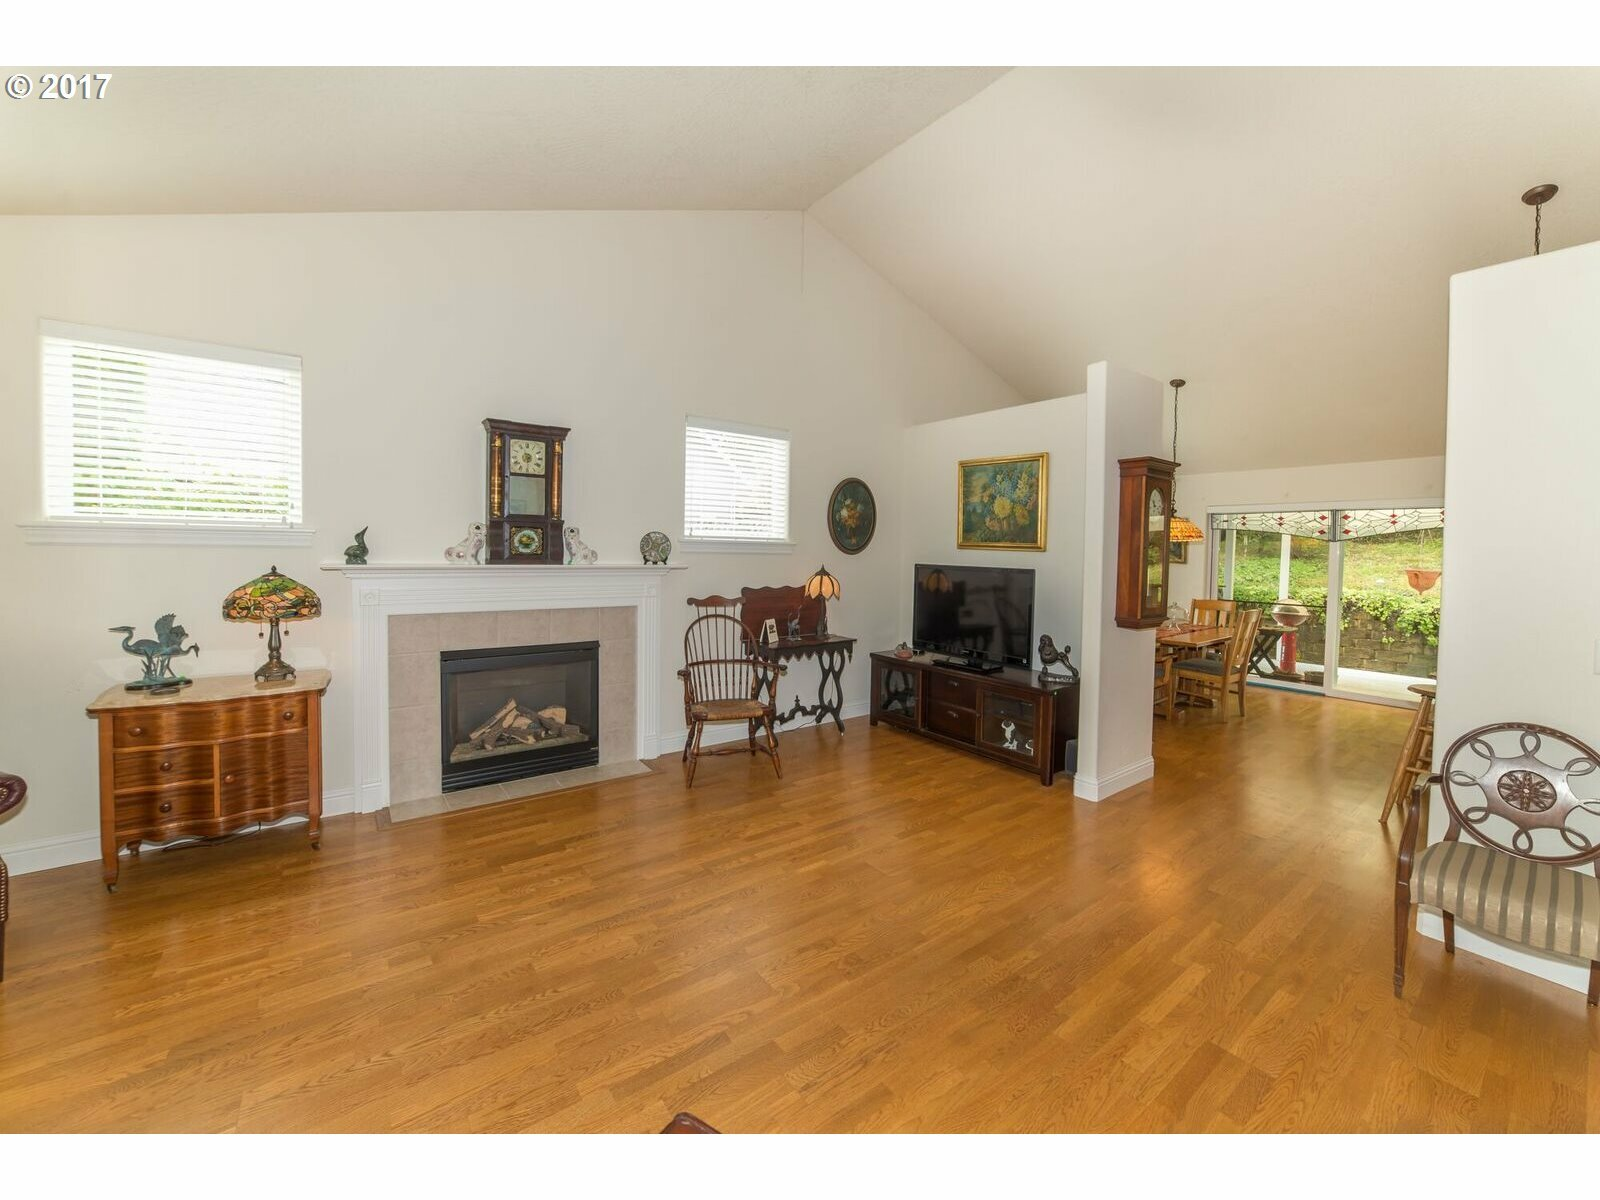 1575 Fairview Pl, Cottage Grove, OR - USA (photo 4)